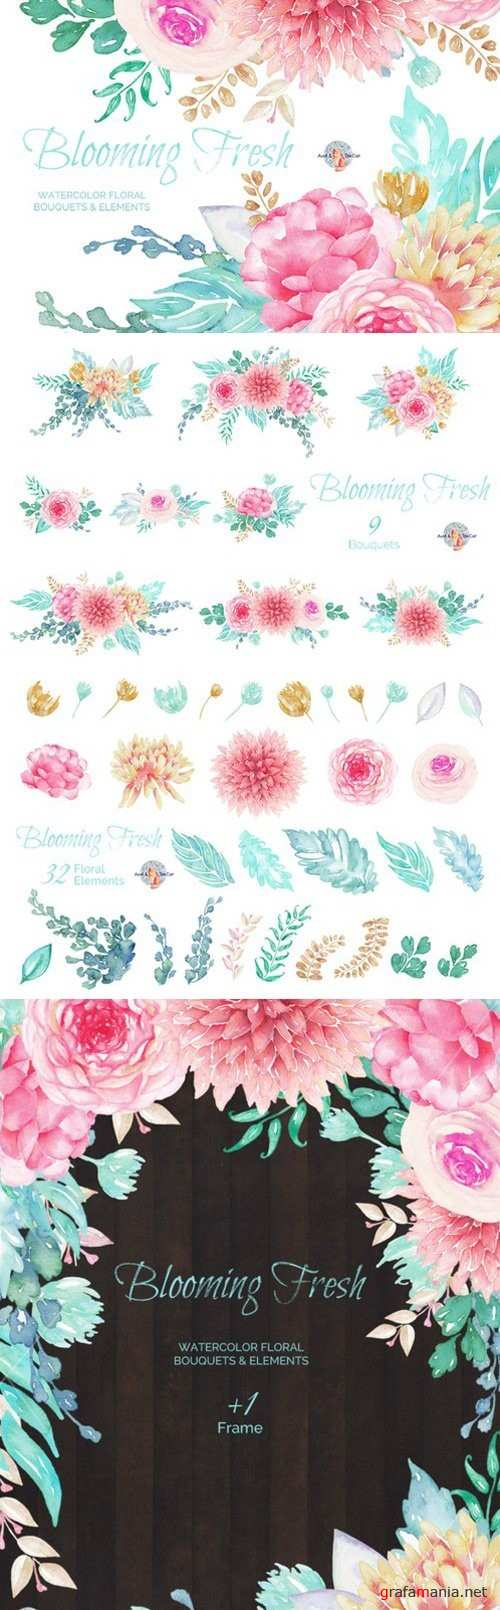 Blooming Fresh Watercolor Clipart - 450143